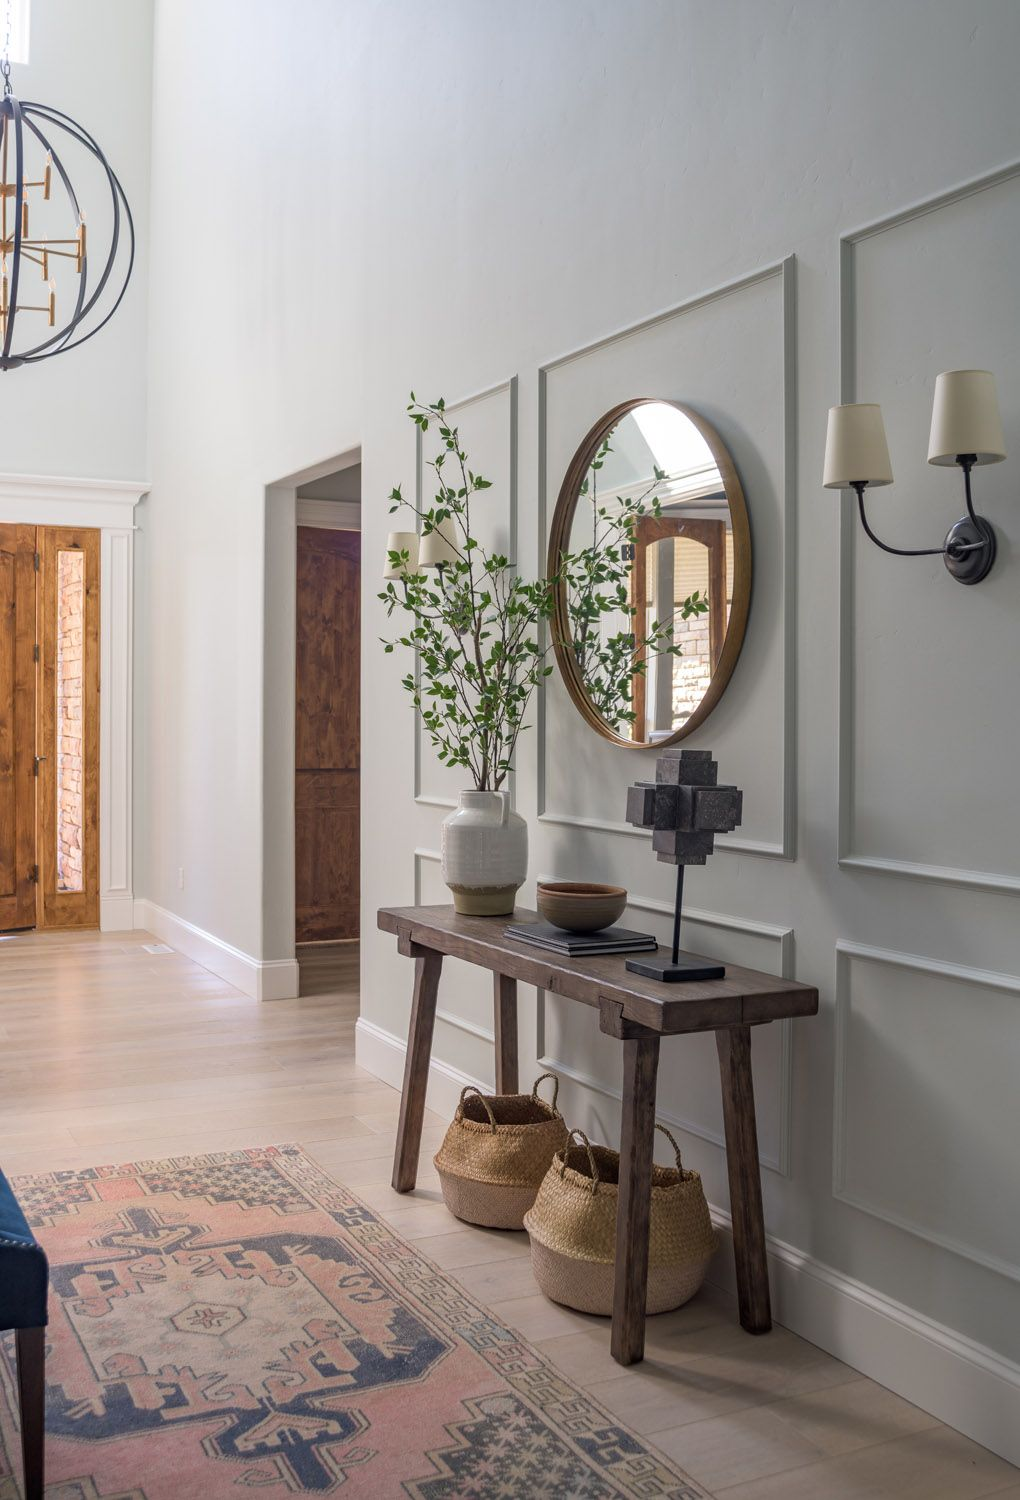 An Updated Home With European Vibes From Poppyloft Interior Design